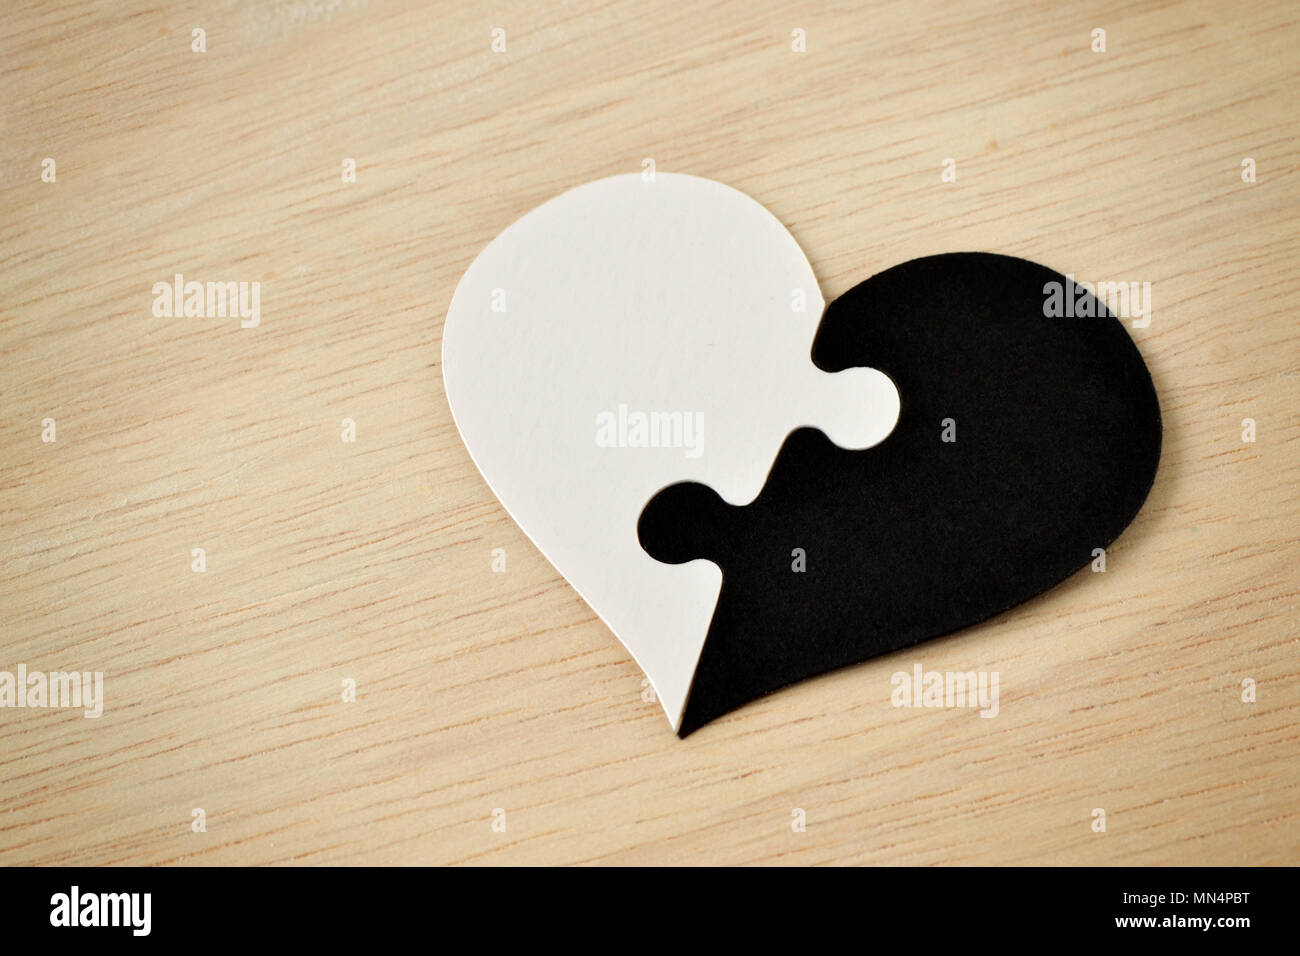 Black and white puzzle heart - Anti-racism concept - Stock Image